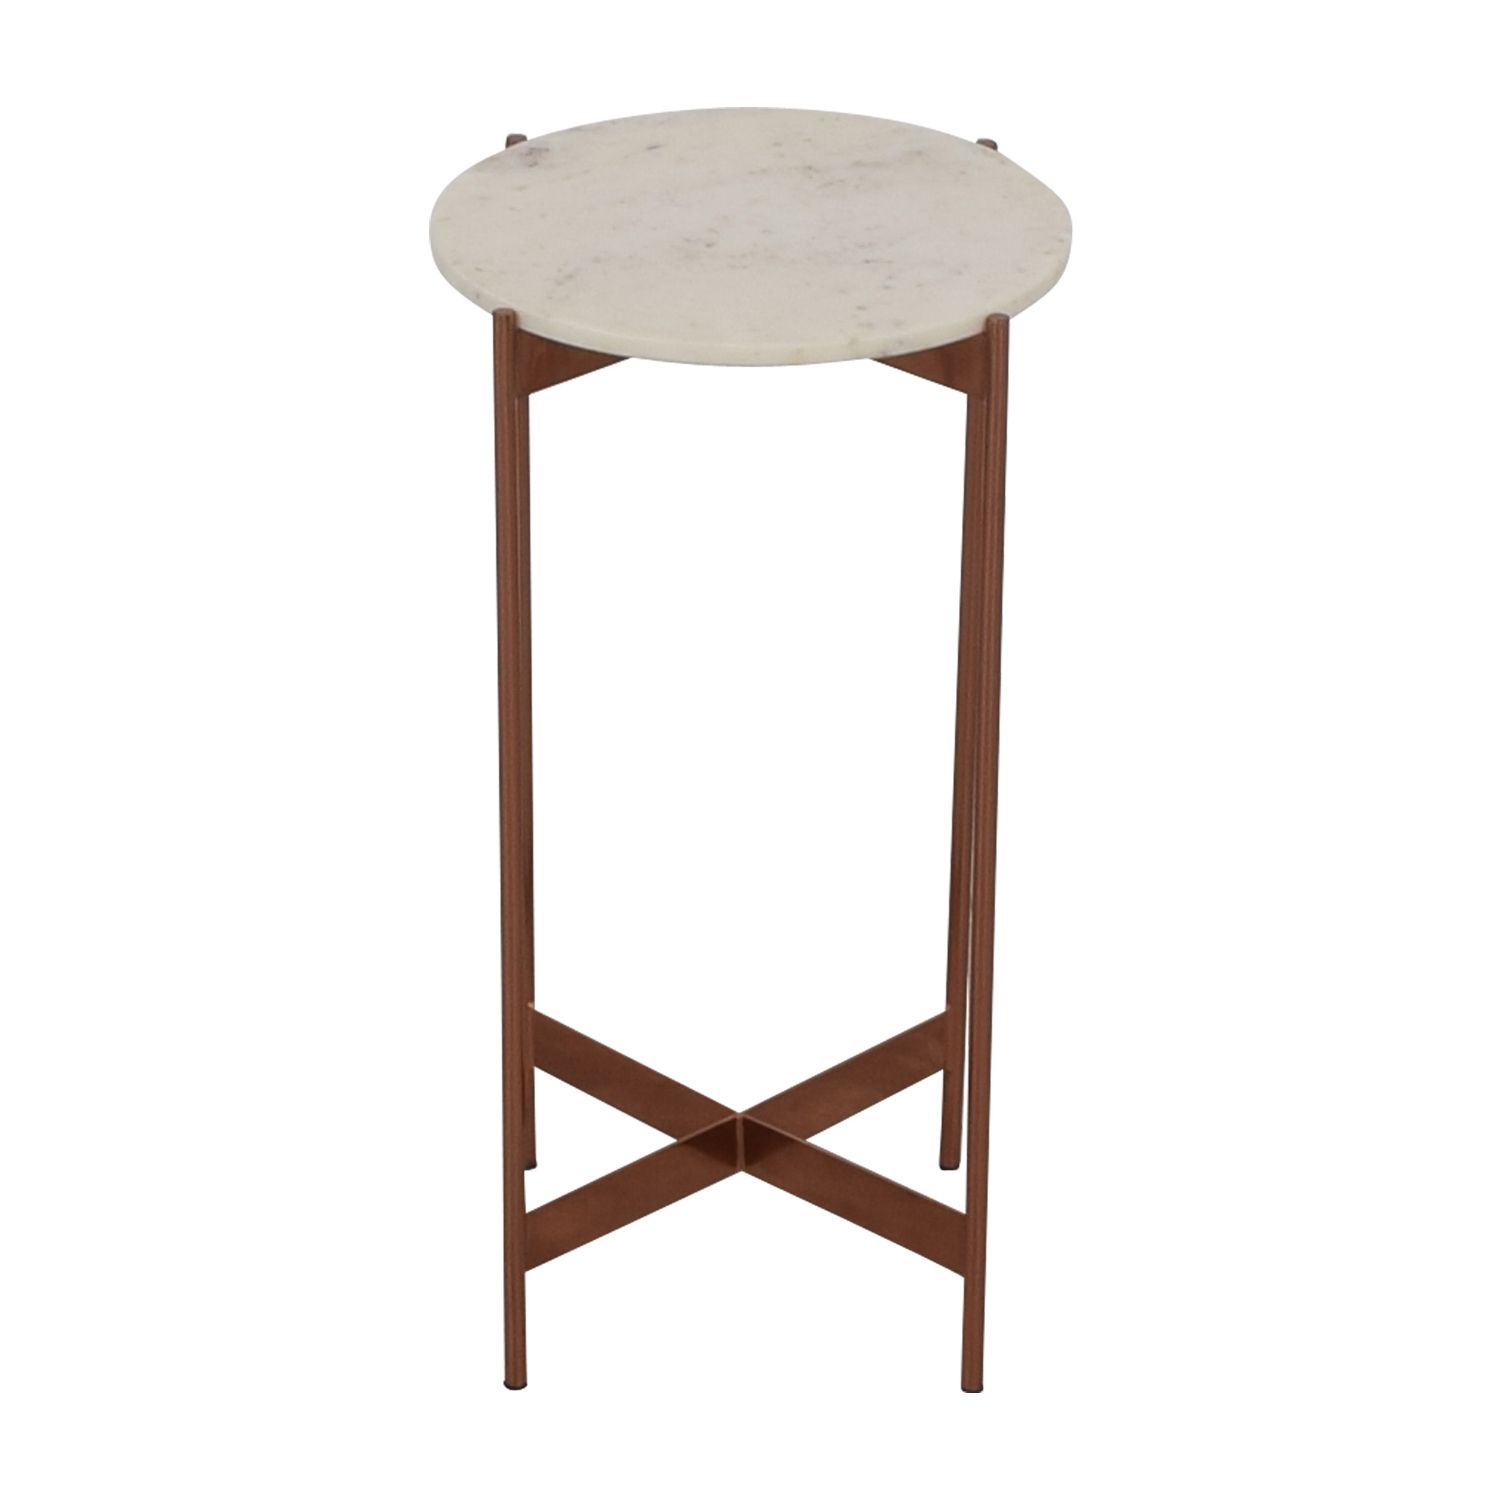 CB2 CB2 Marble Pedestal Table on sale